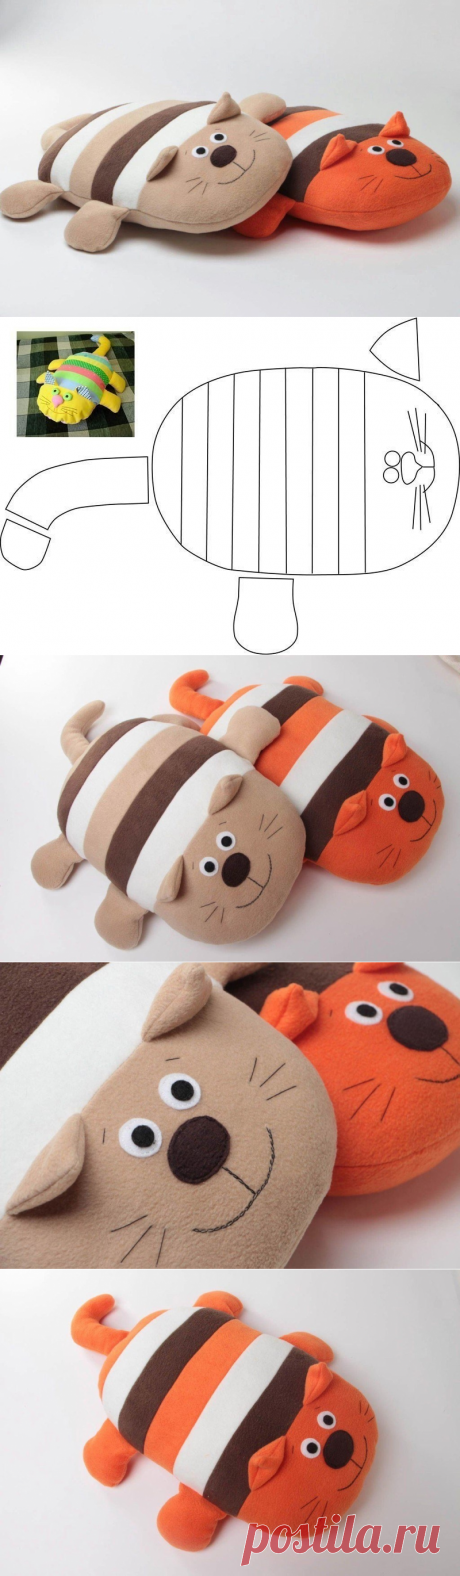 Lovely cats: pillow toys